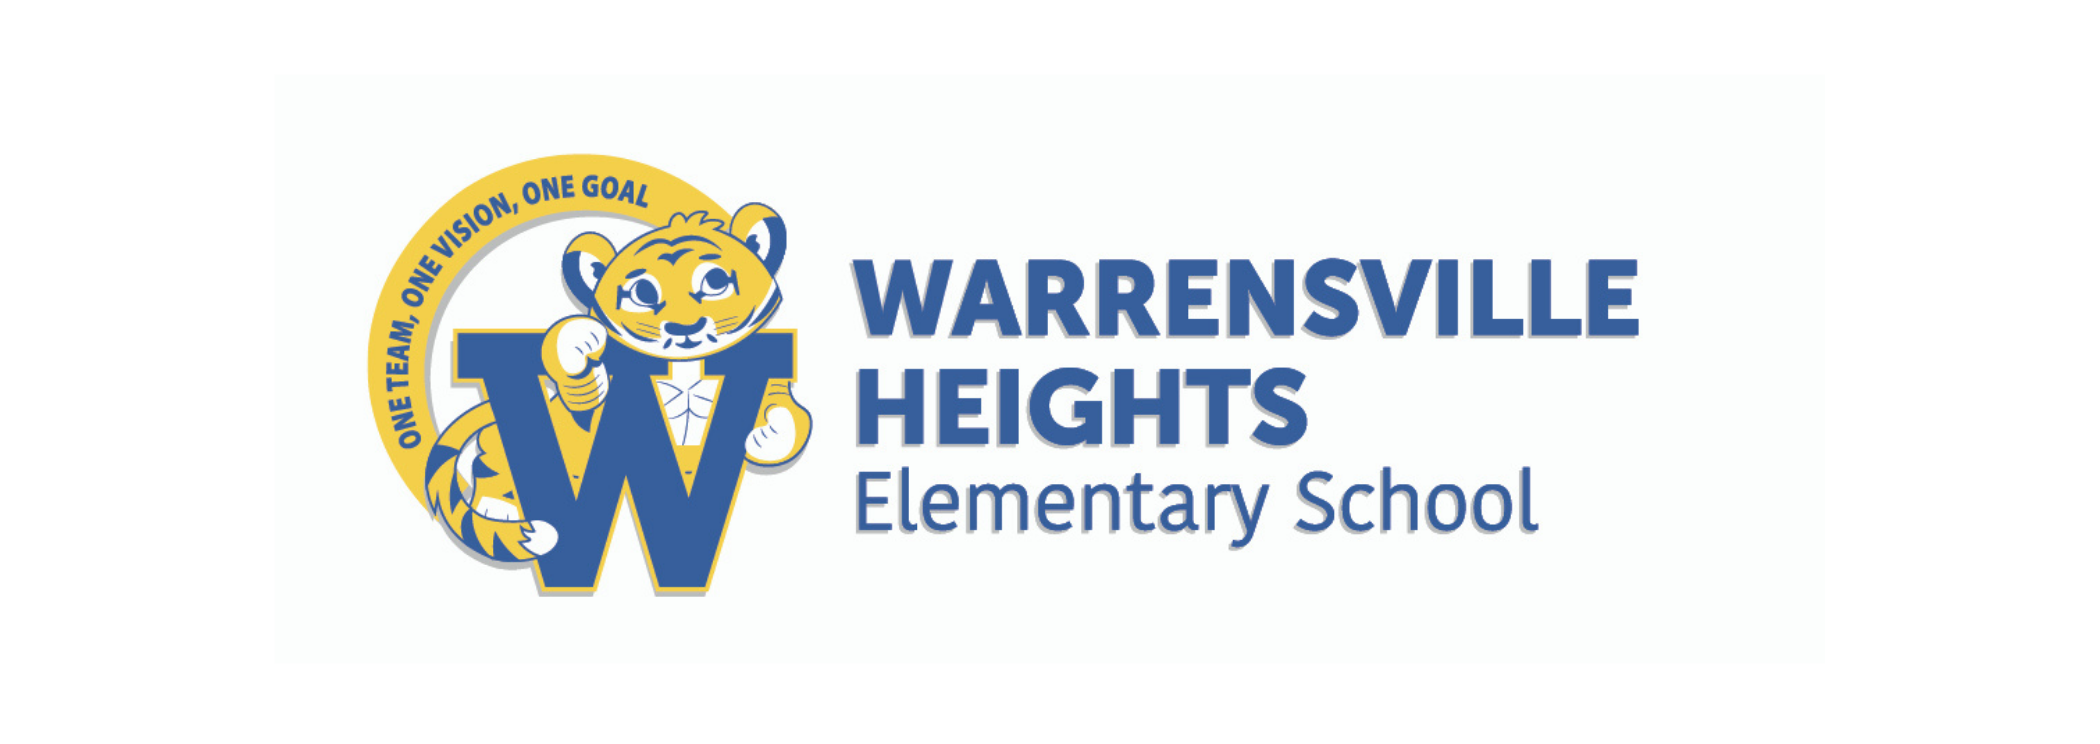 warrensville heights elementary school logo